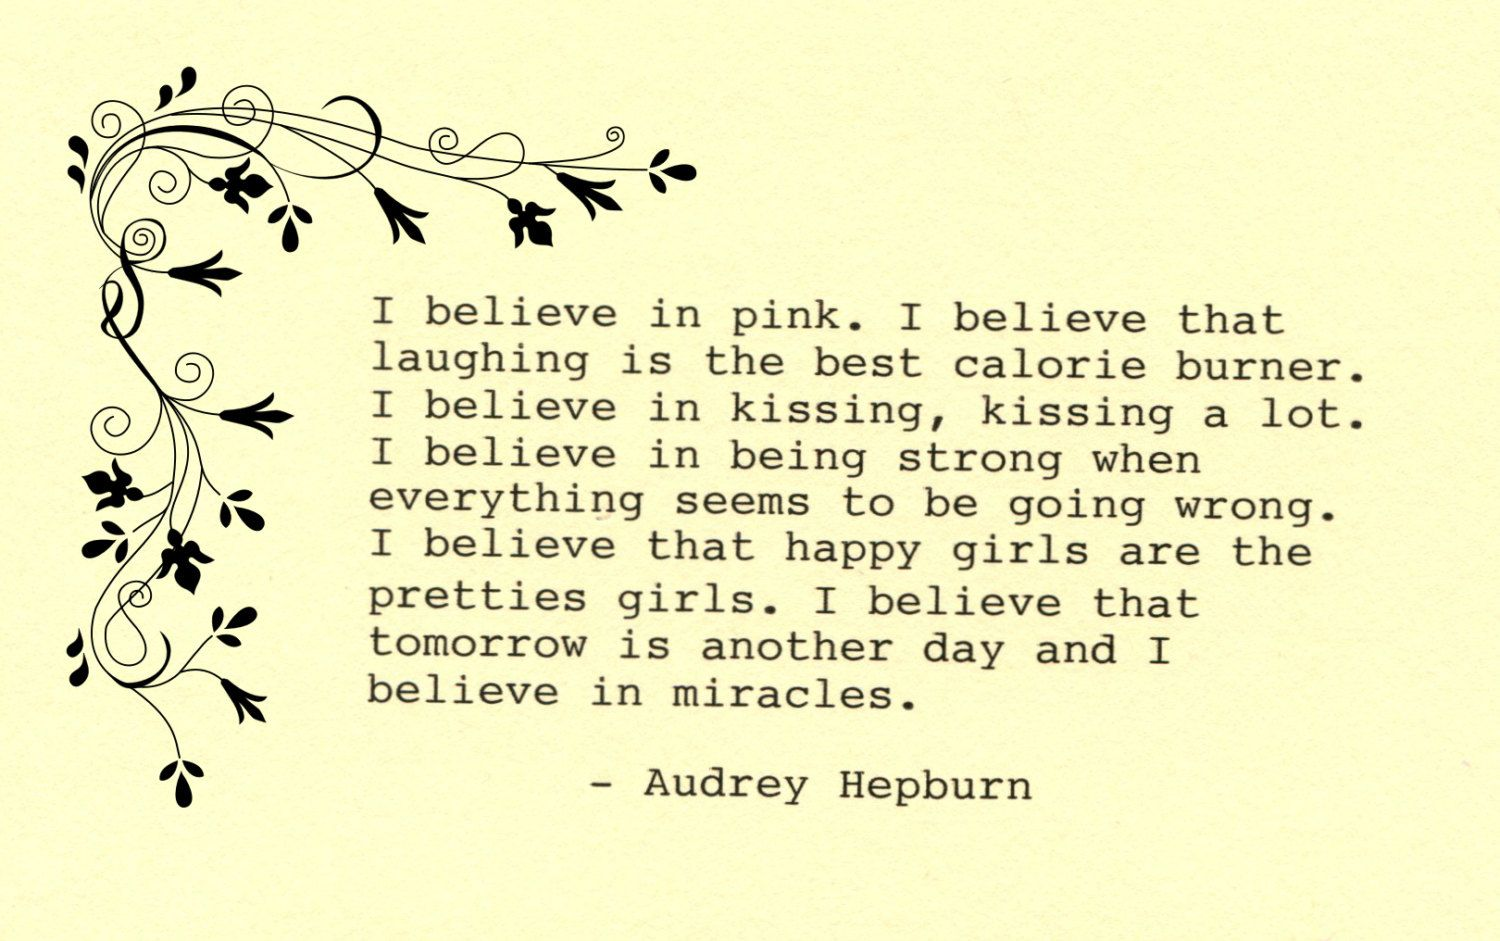 Audrey Hepburn Quote Made on Typewriter Art Quote Wall Art - I ...